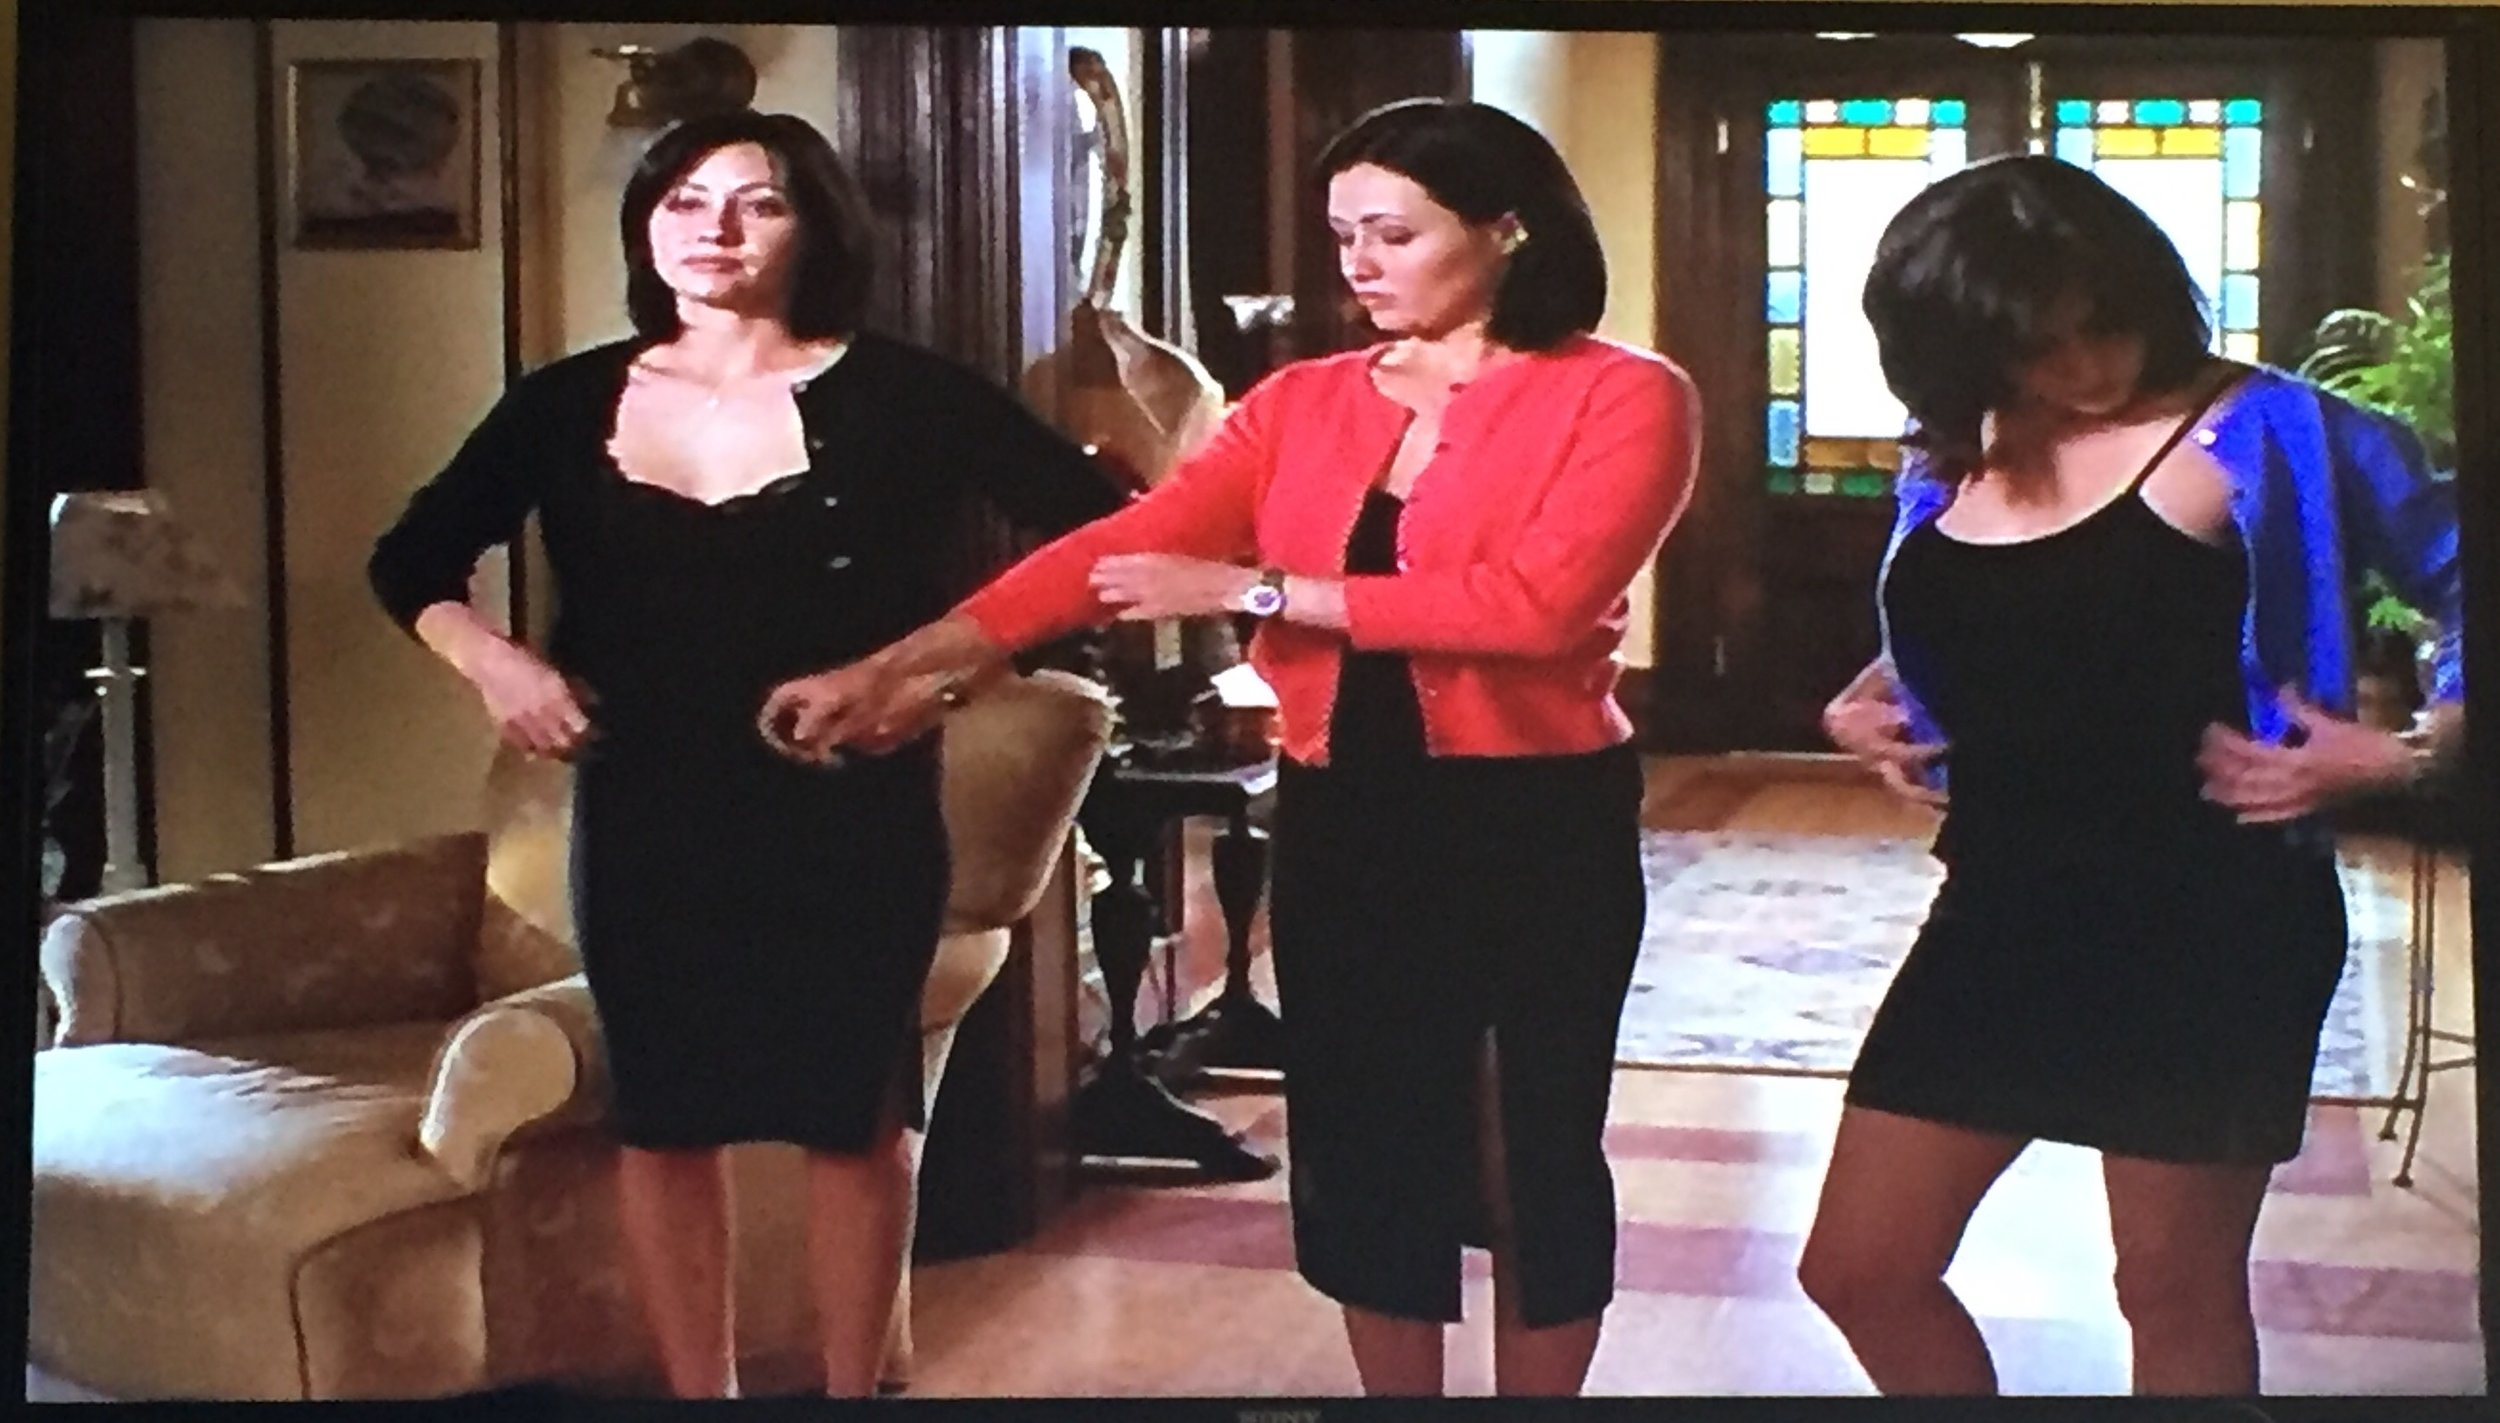 Still love that Prue Prime's skirt is mid-length, the more uptight Pink Prue's skirt is at the knee, and the more flirty Blue Prue's skirt is short and tight!